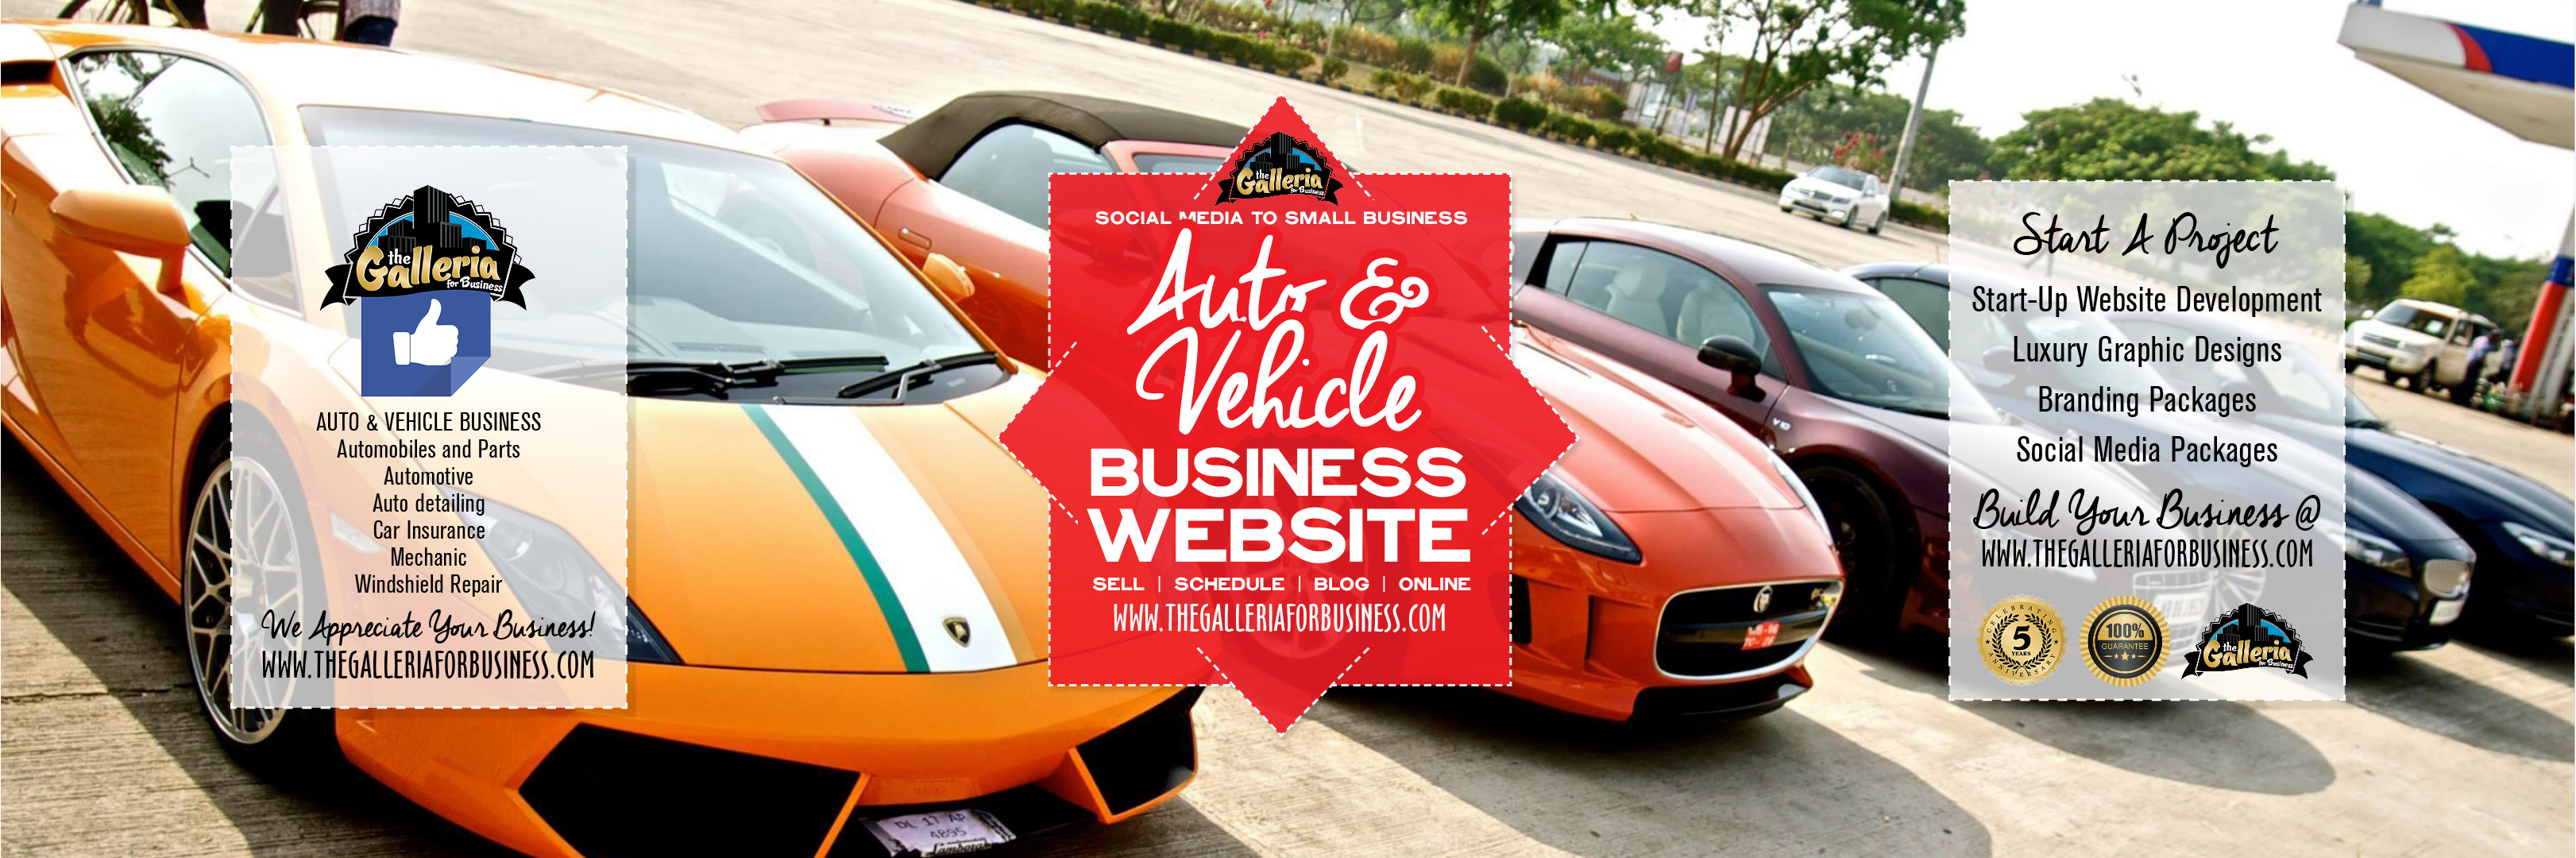 Auto & Vehicle Business